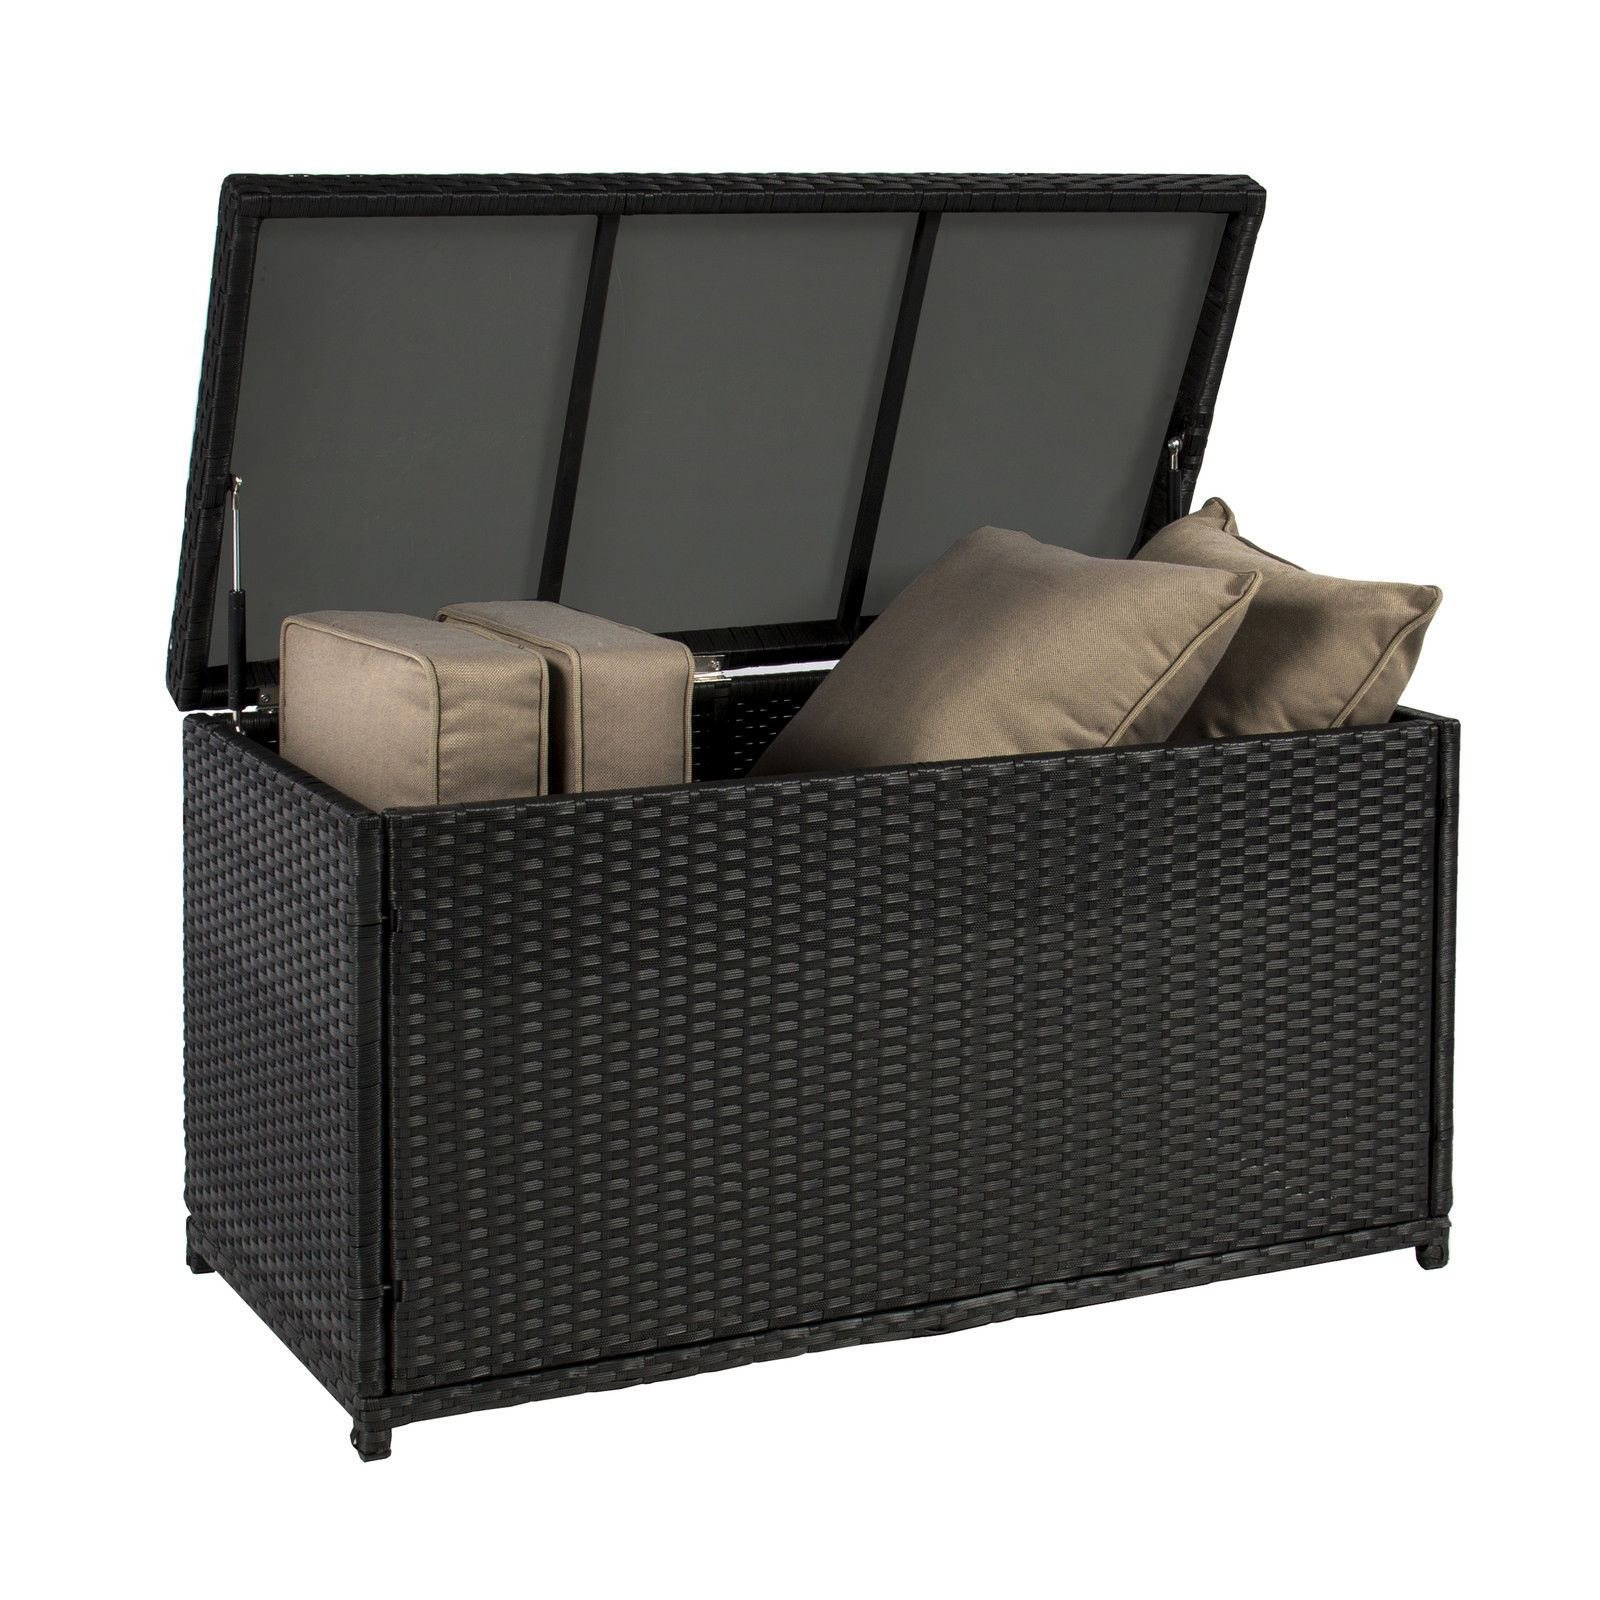 Wicker Deck Storage Box Weather Proof Patio Furniture Pool Toy Container by AUEY (Image #2)